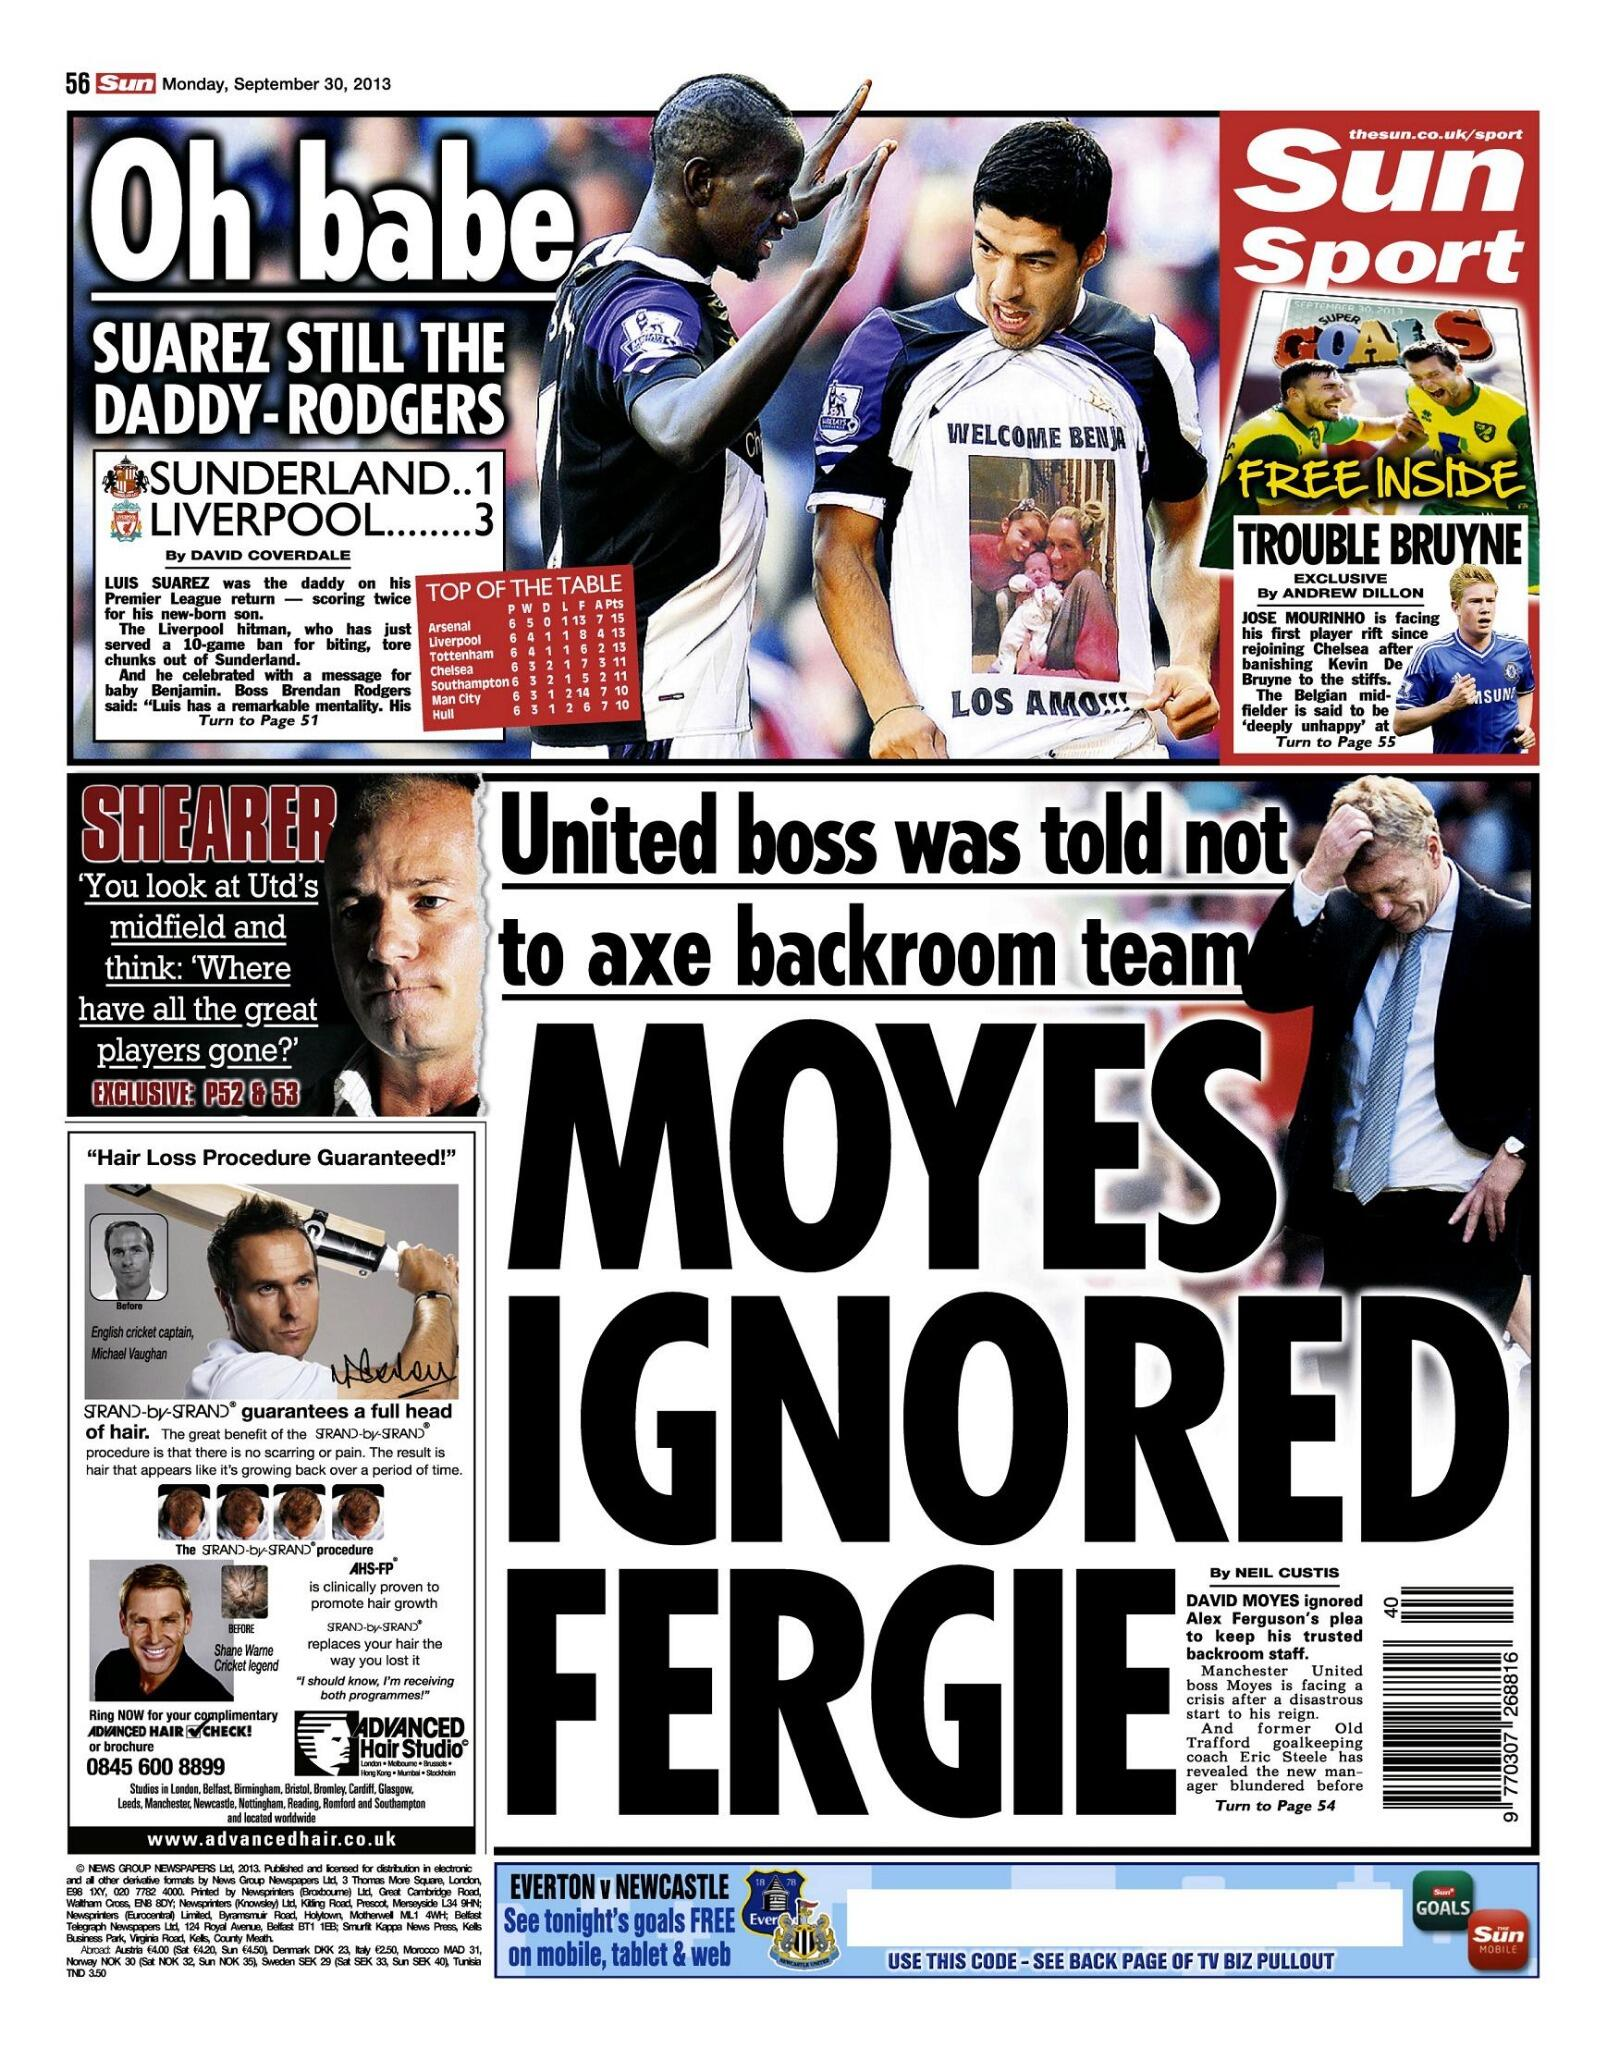 David Moyes ignored Sir Alex Ferguson by axing old backroom team at Manchester United [Sun]